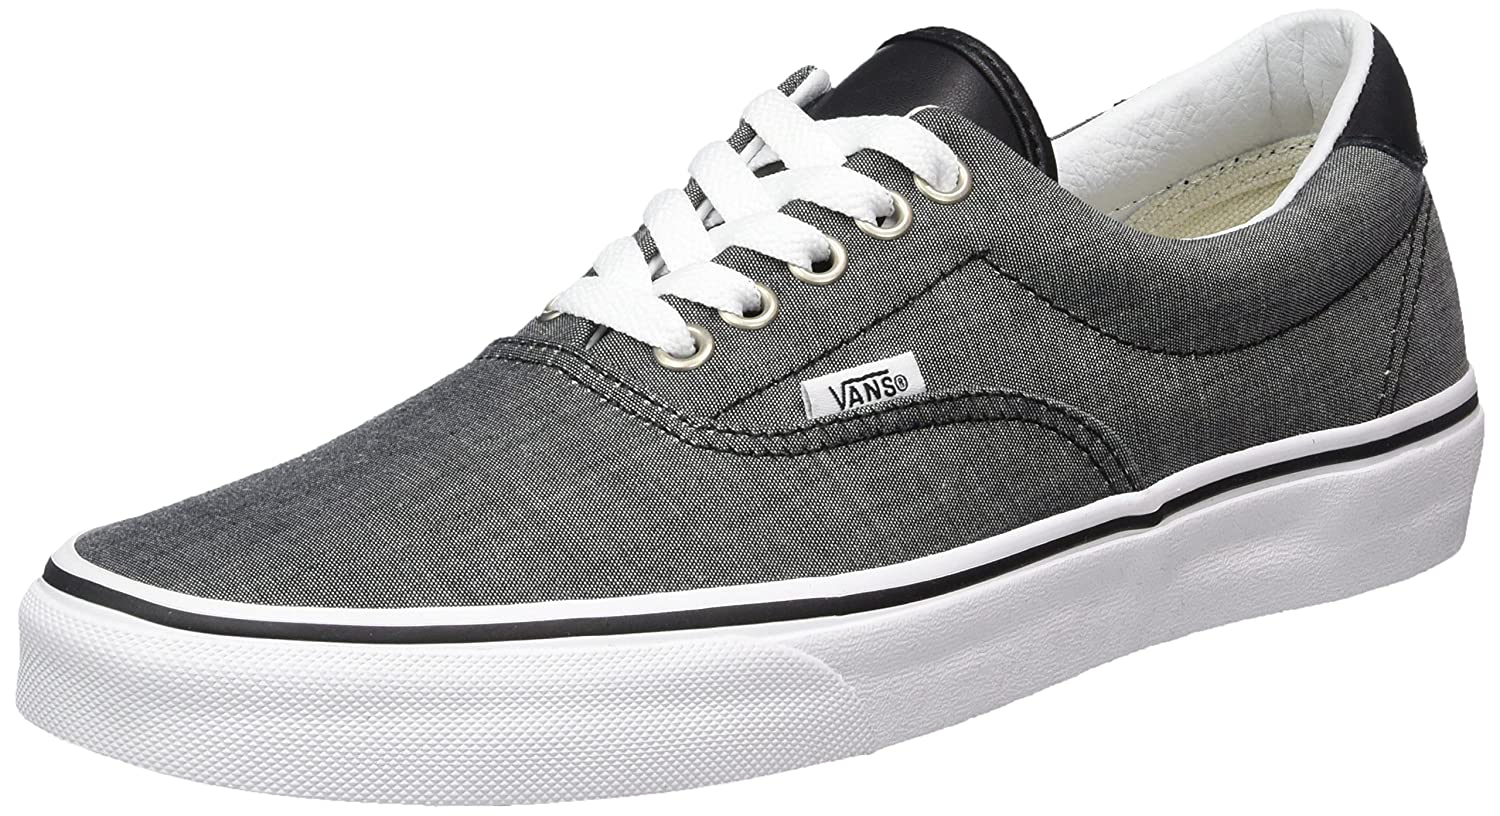 Vans Unisex Era 59 Skate Shoes B01I4B247S 10.5 M US Women / 9 M US Men|Chambray/Black